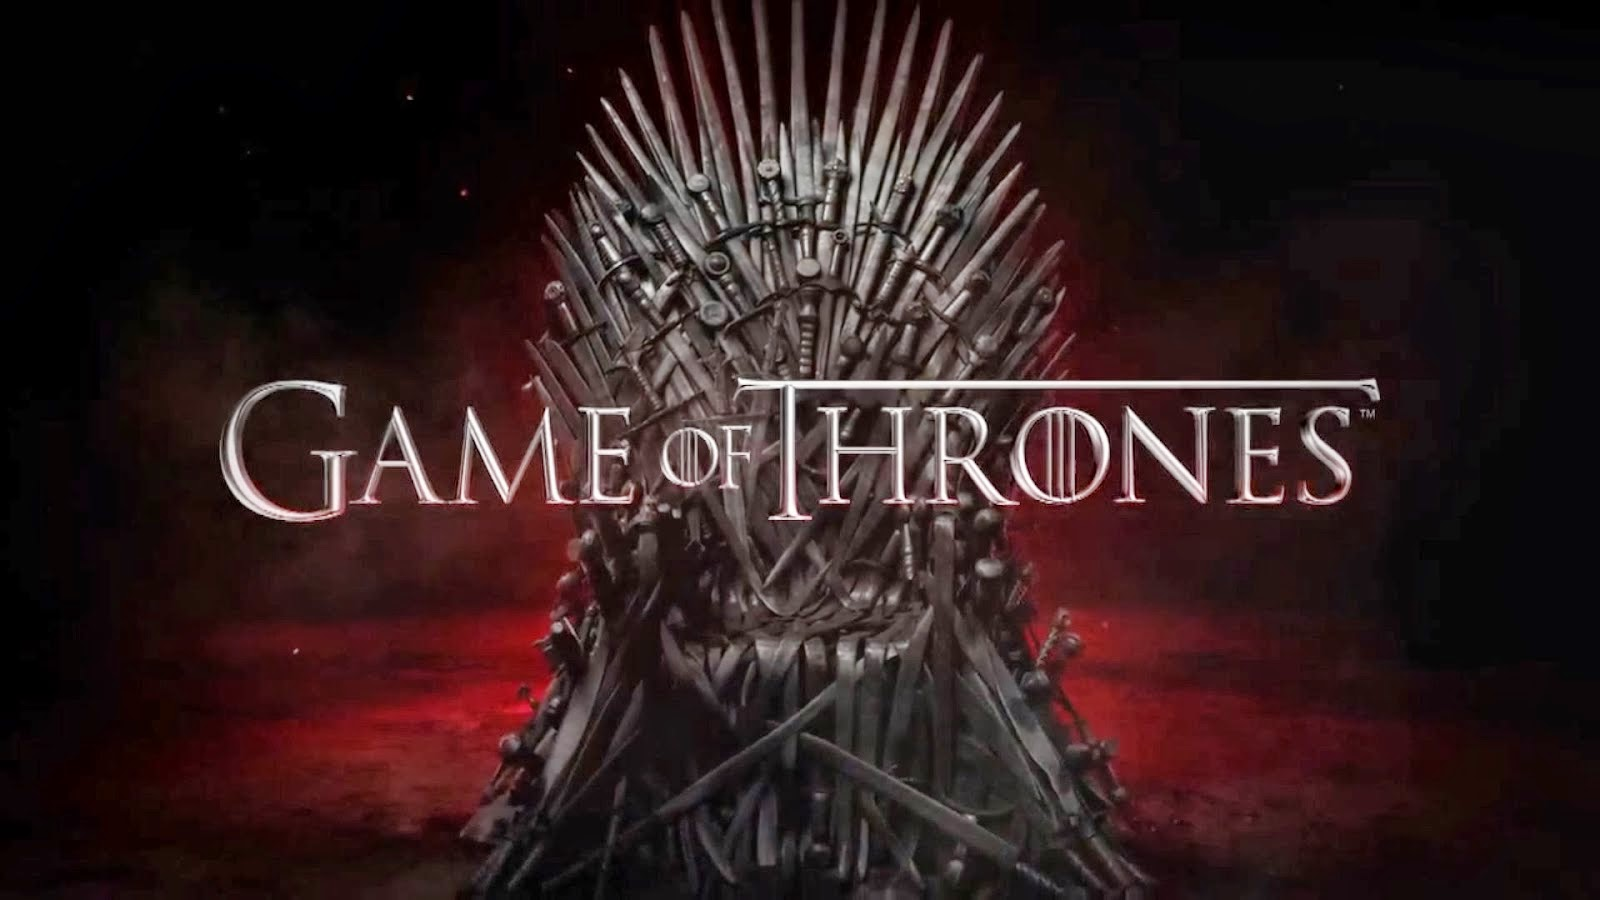 game of thrones free to watch online